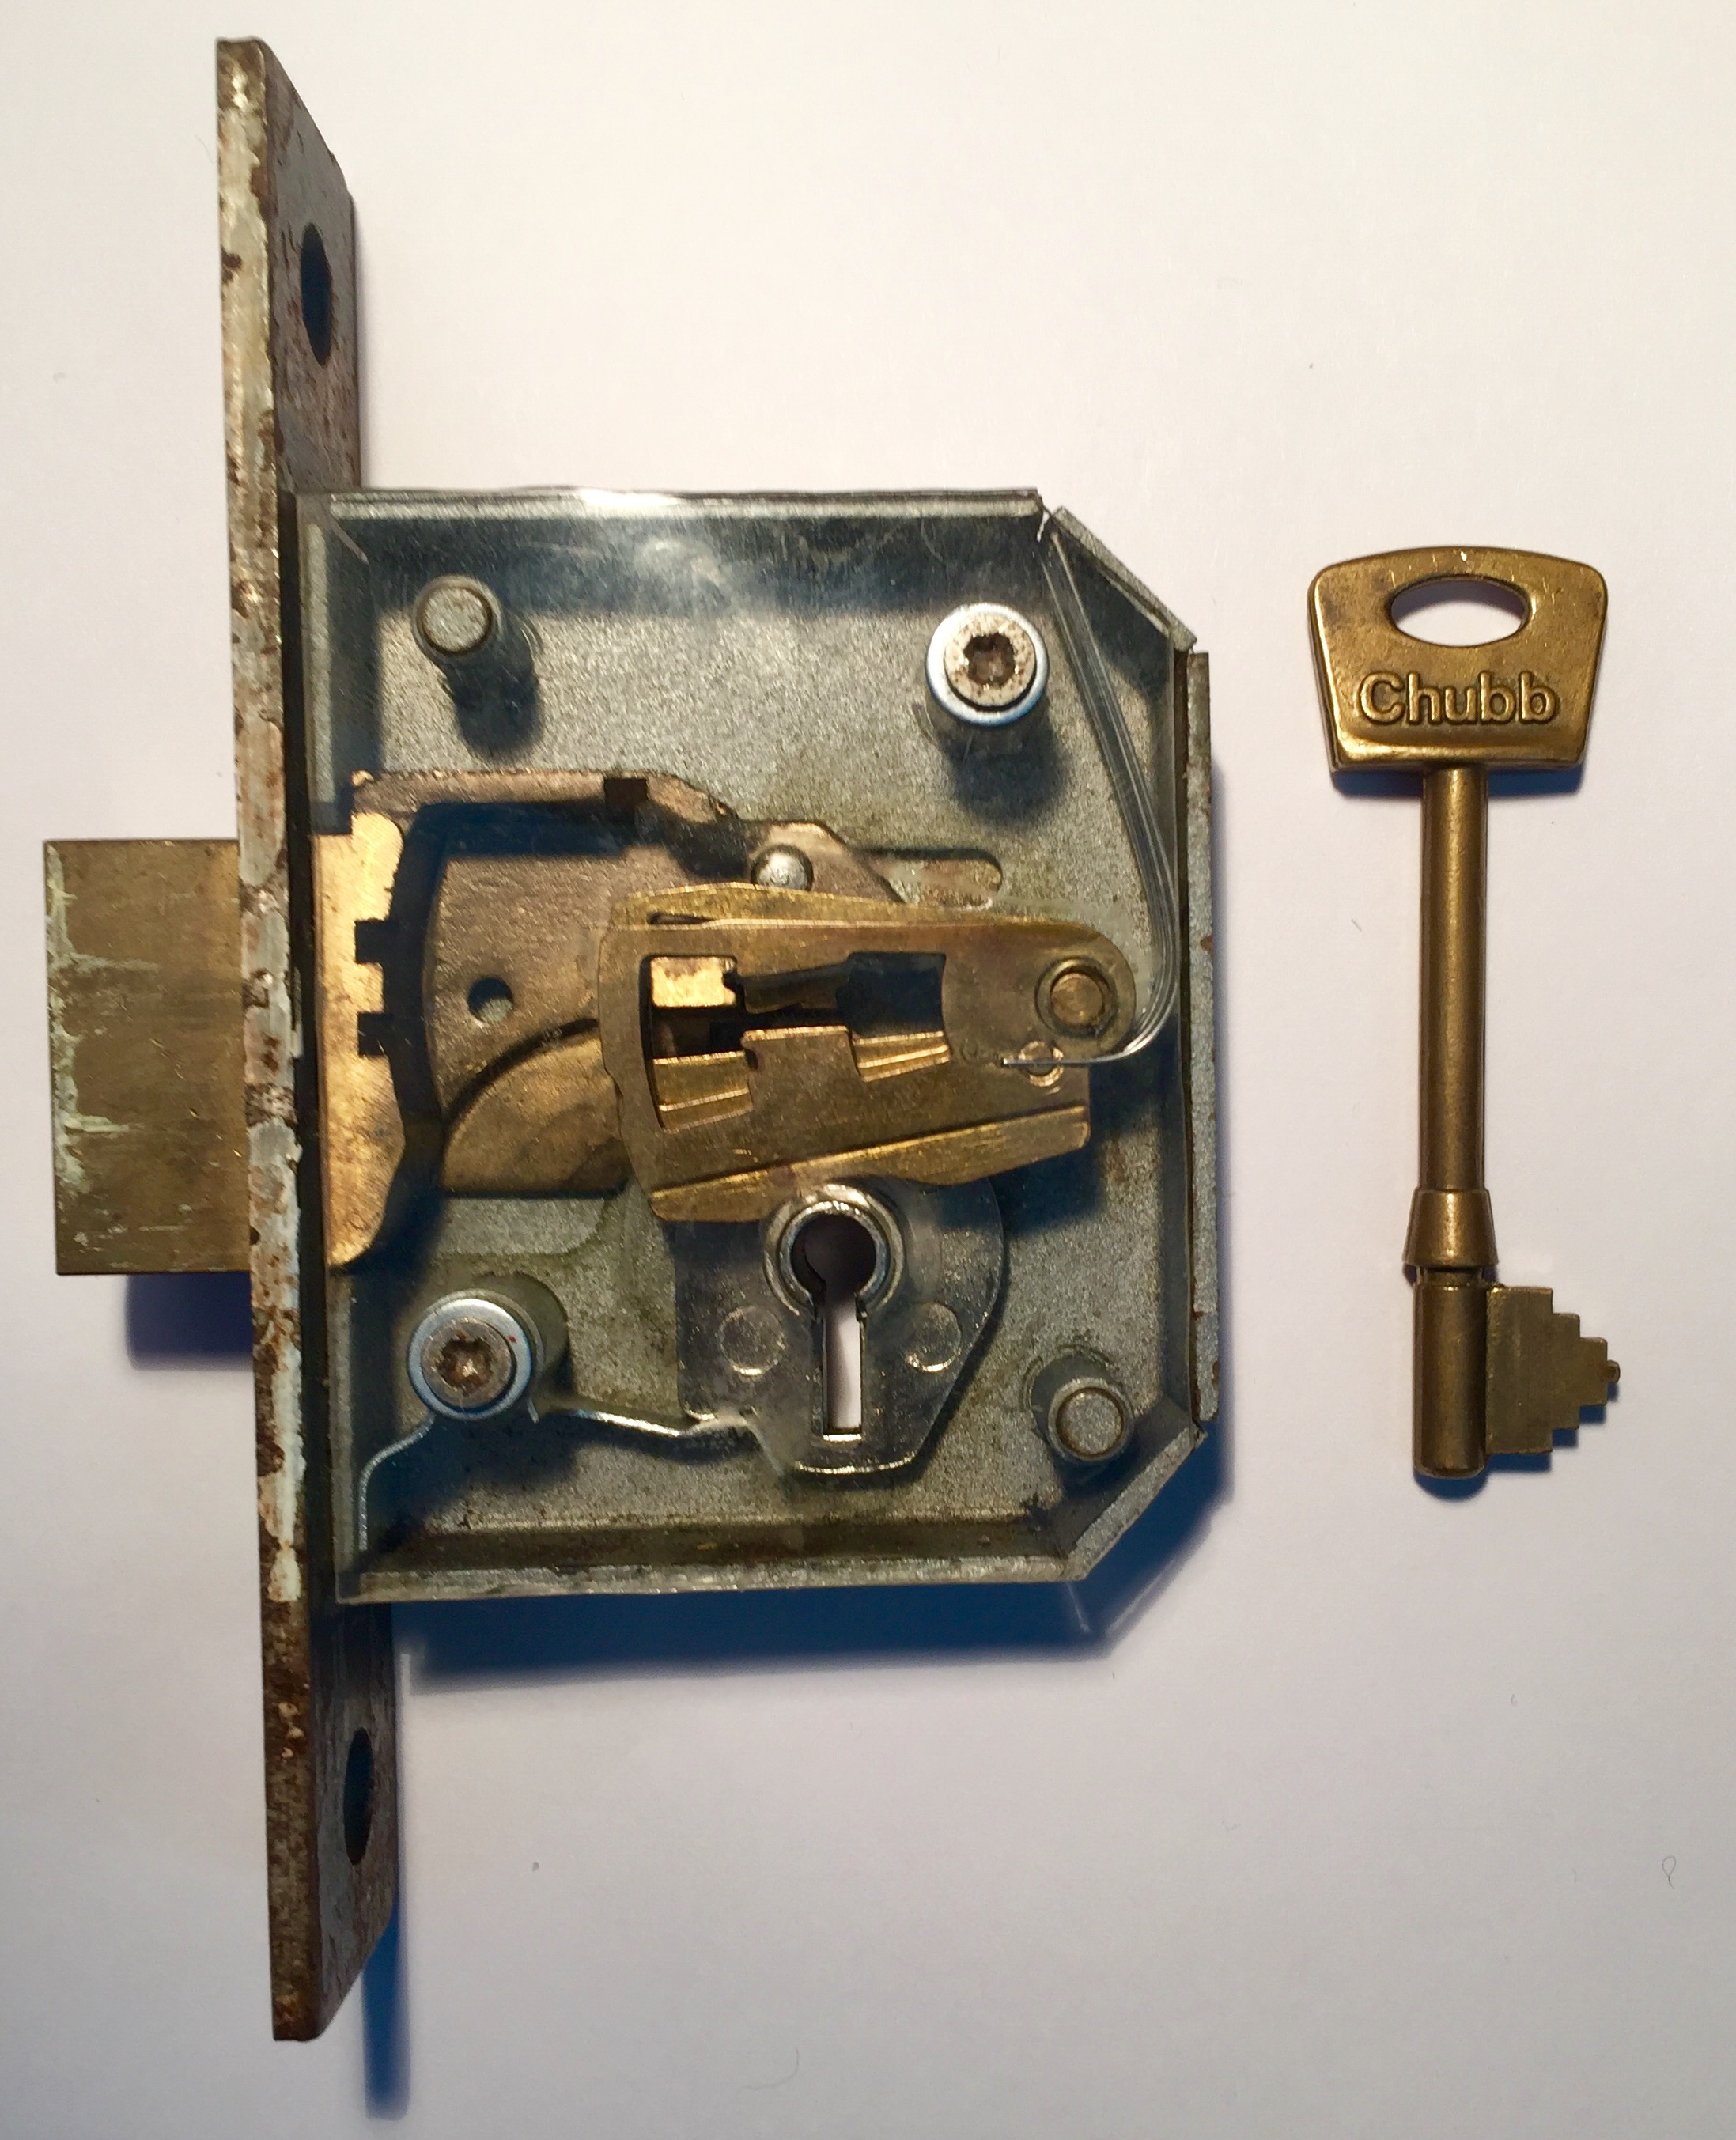 FileLever Lock And Keyjpg Wikimedia Commons